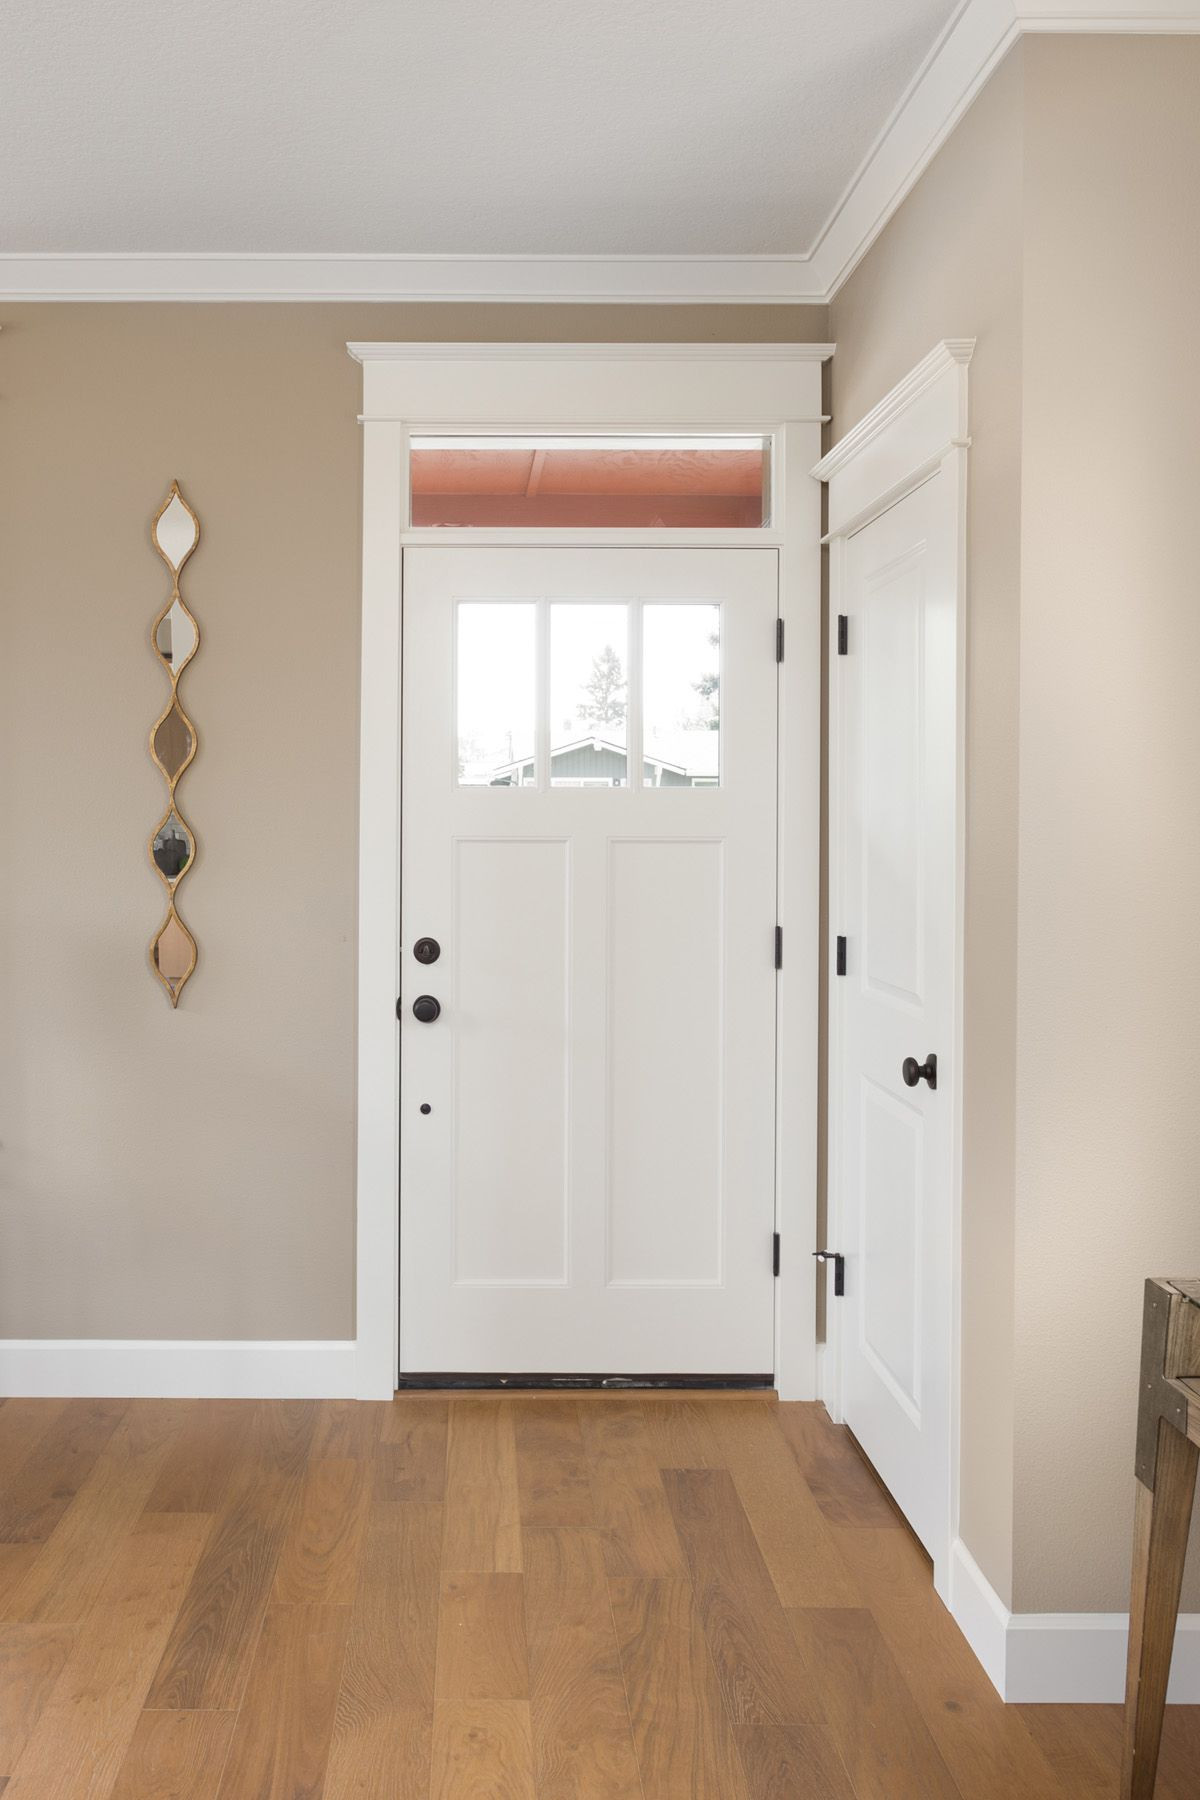 26 Unique Maine Traditions Hardwood Flooring Prices 2021 free download maine traditions hardwood flooring prices of 15 ways to bring good luck to your house in good luck entryway 1523460343